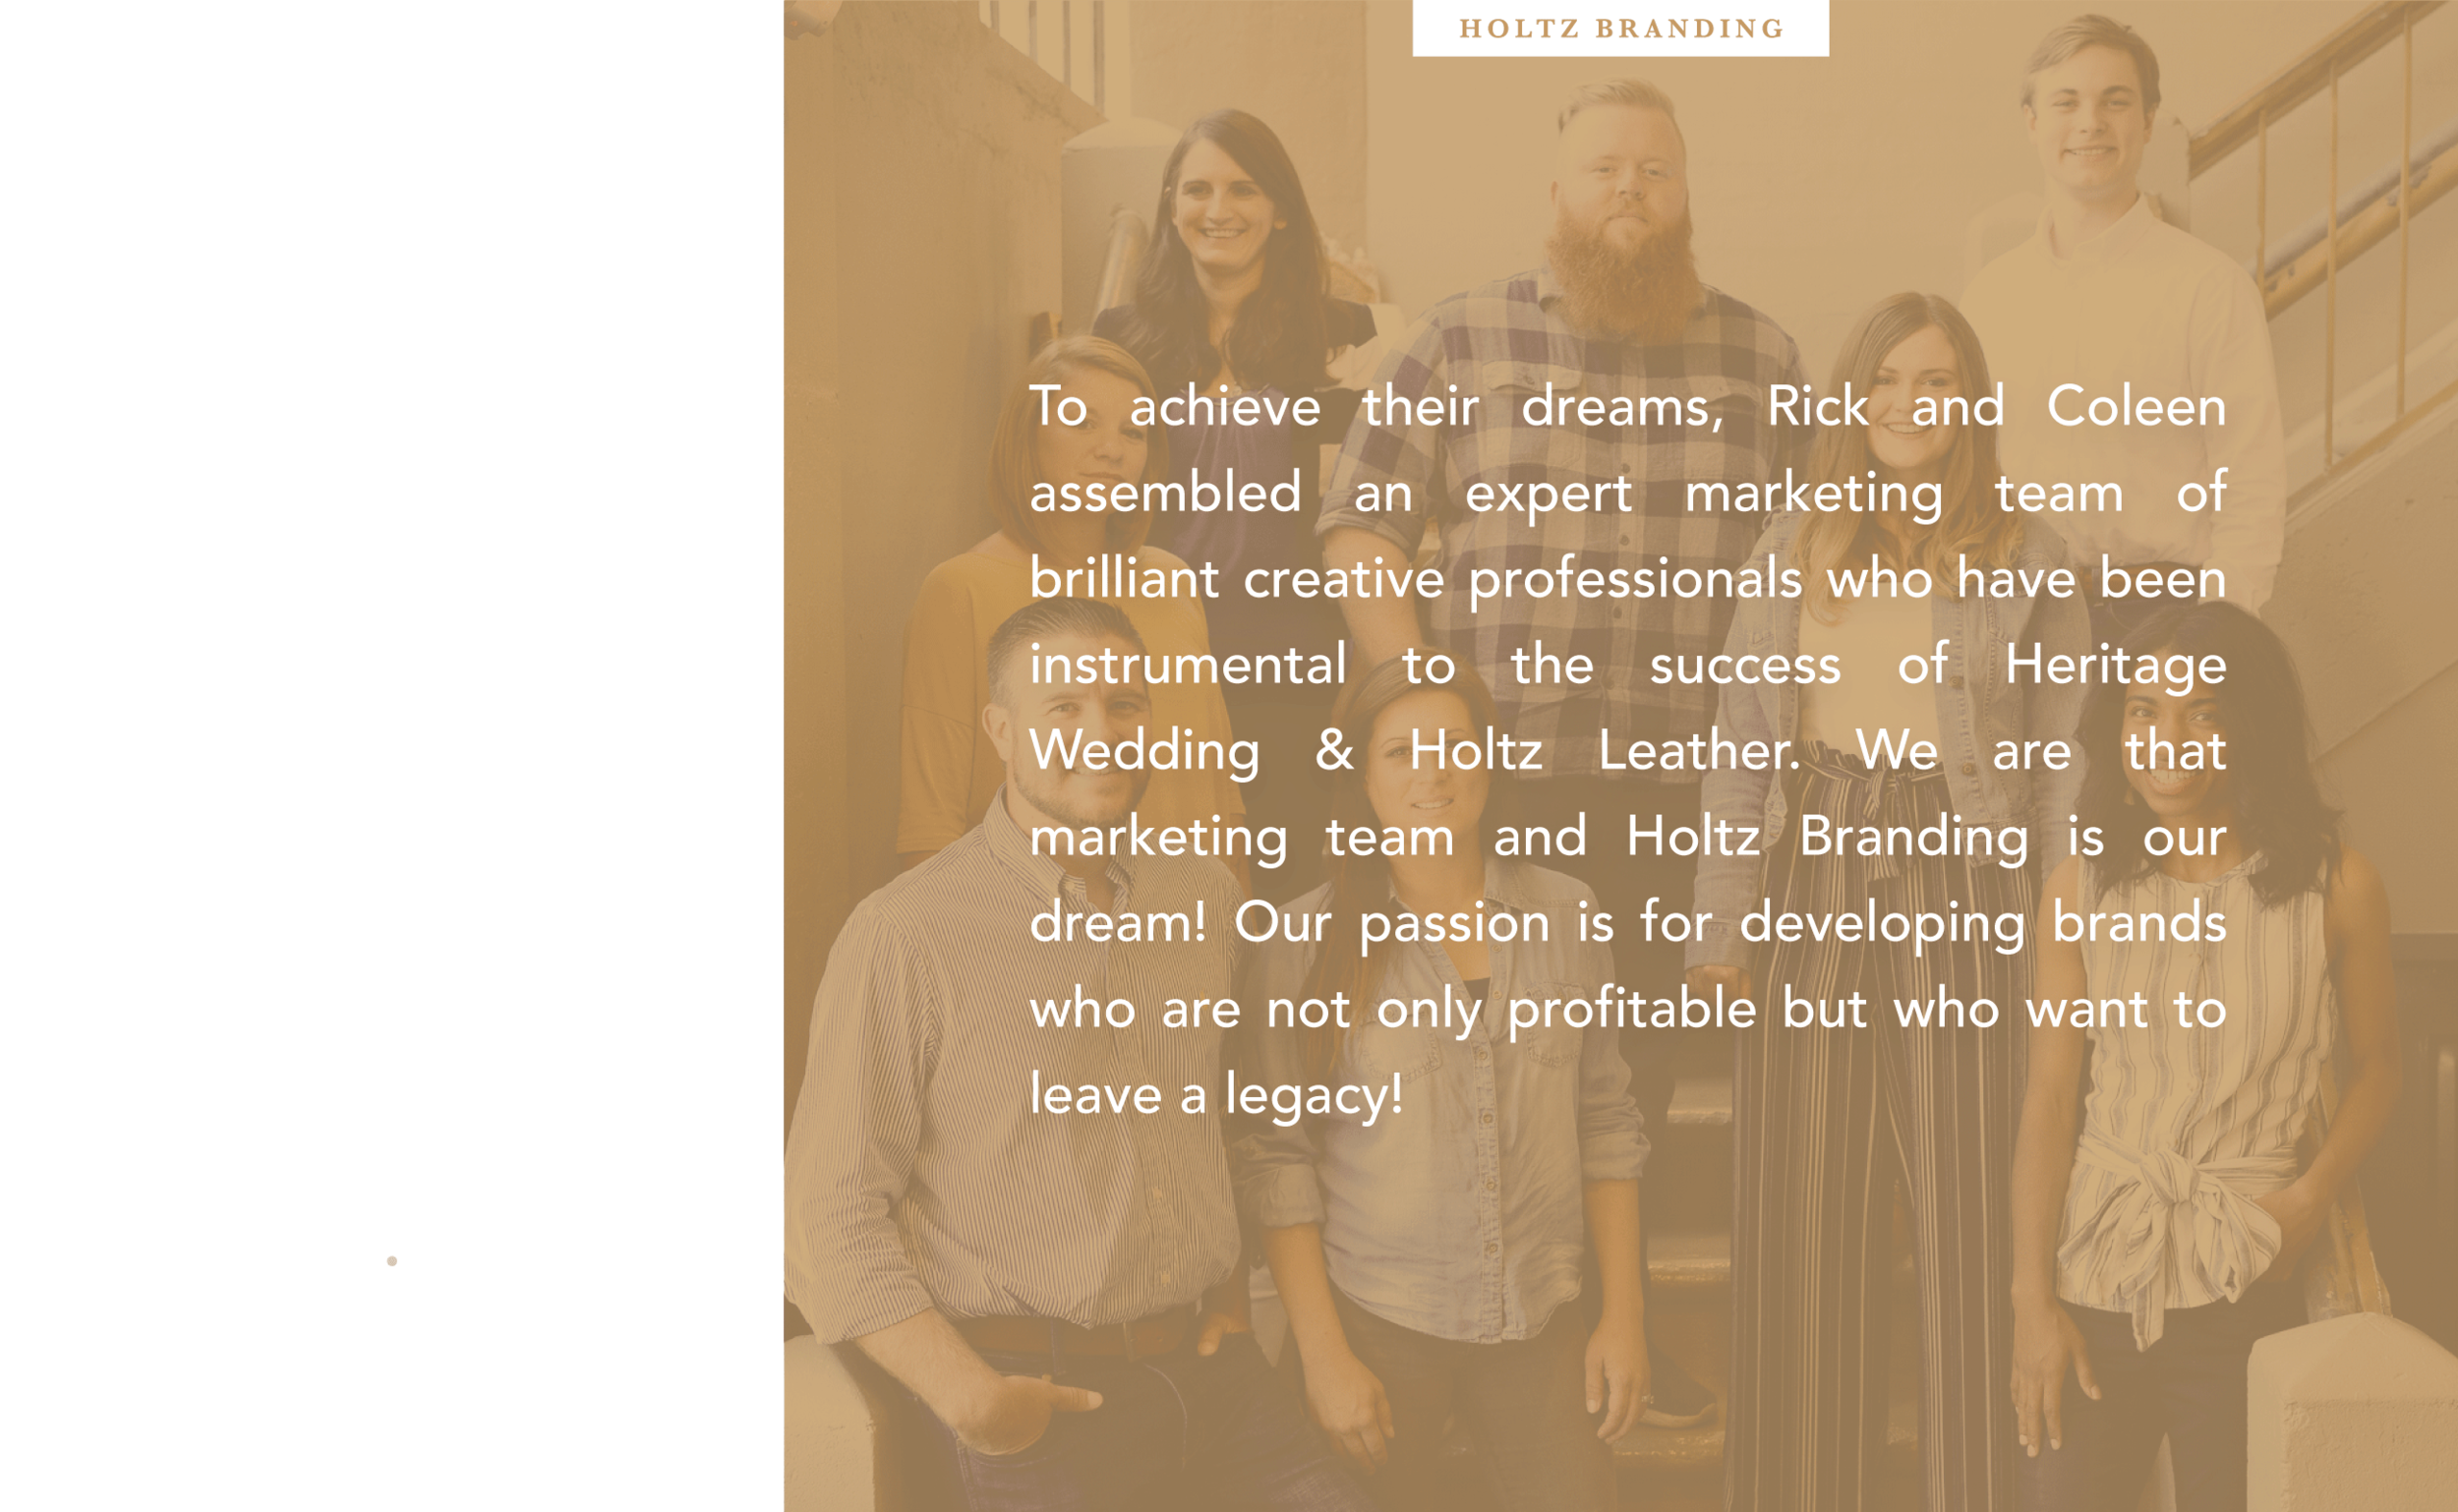 HoltzBranding-AboutUs-HoltzBranding-Transparent-02.png